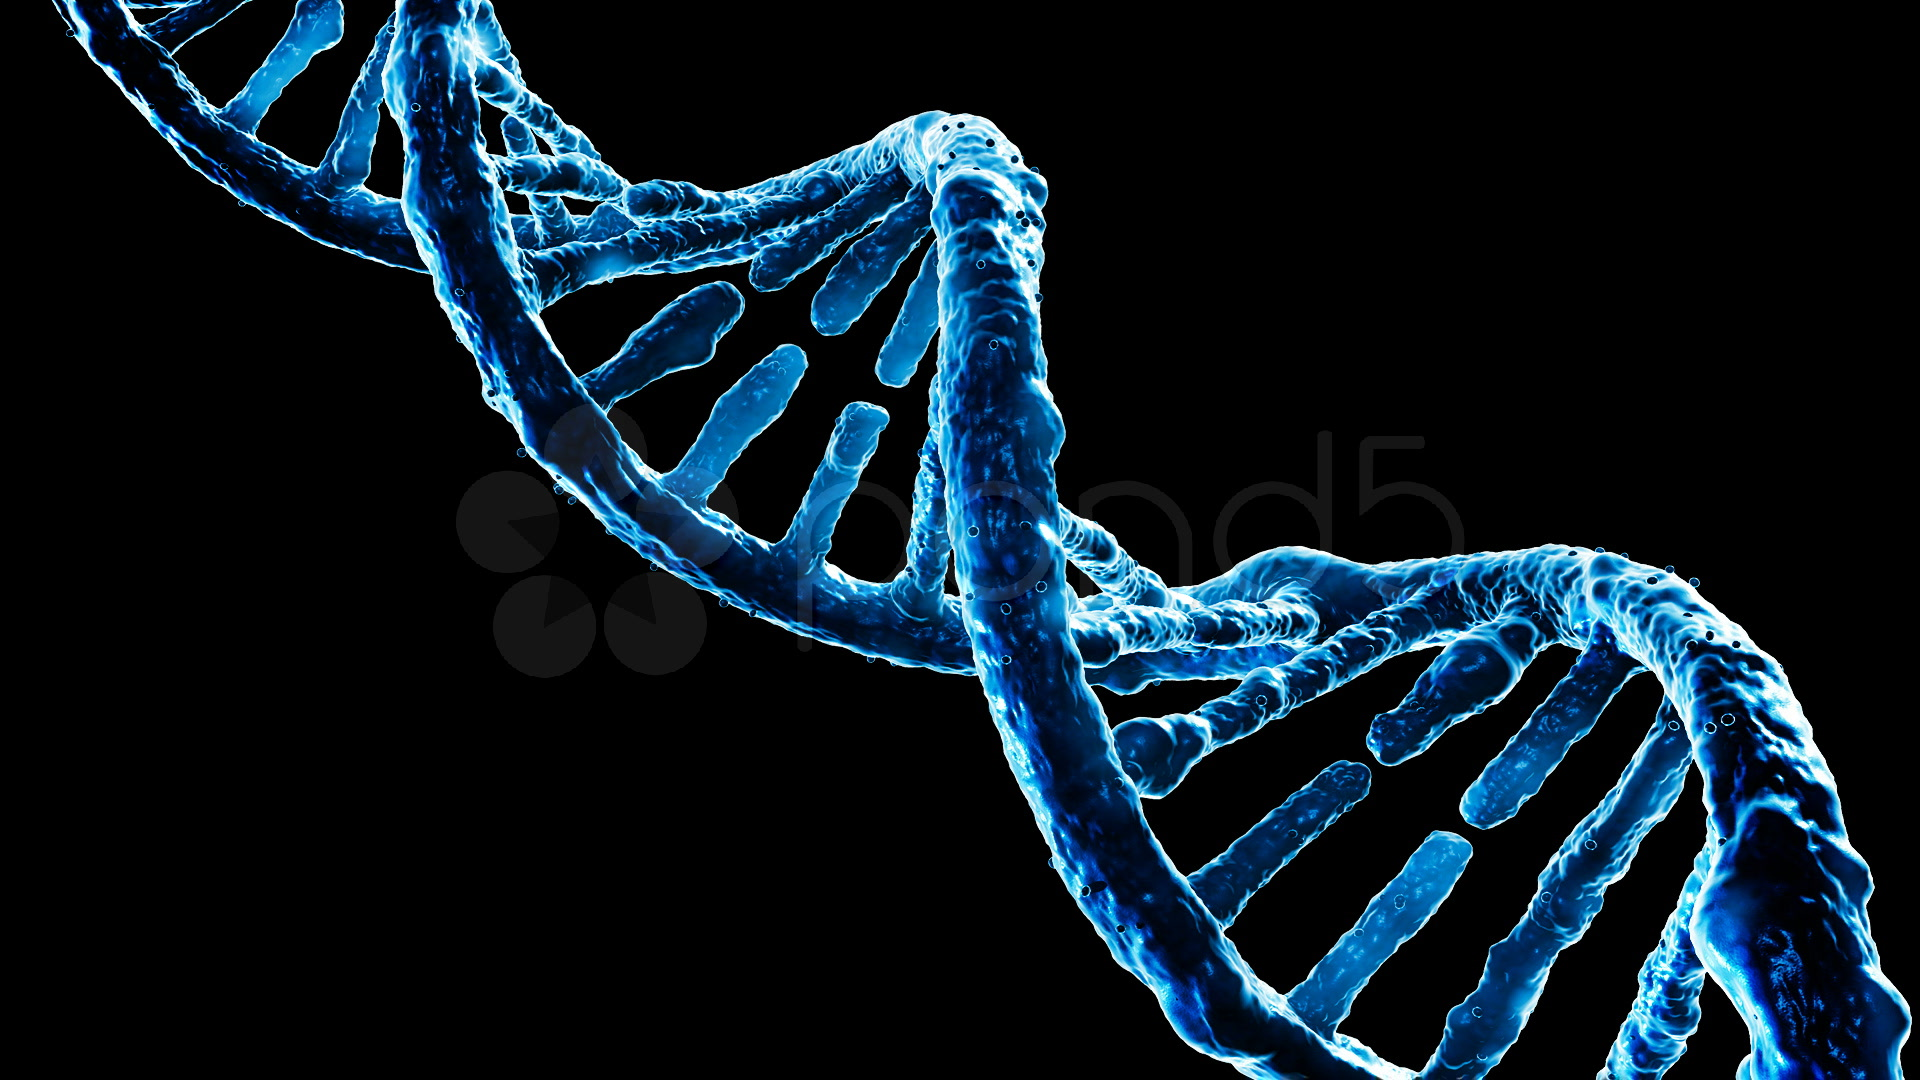 Blue Dna Strand Stock Video 517124 HD Stock Footage 1920x1080